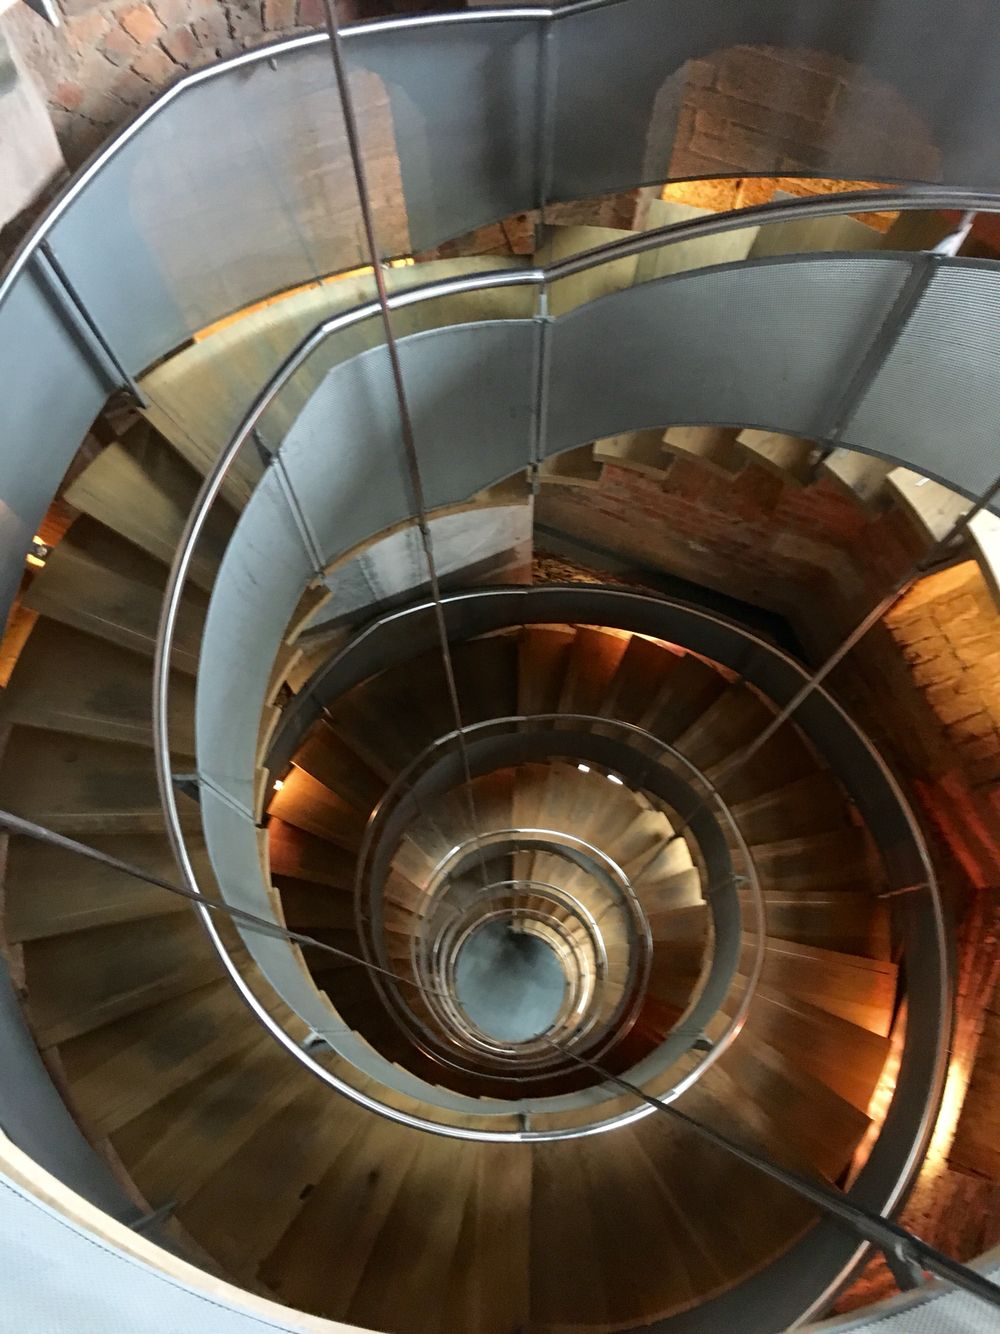 The Amazing Spiral Staircase At The Lighthouse, Glasgow. Leading To  Spectacular Views Across Glasgow